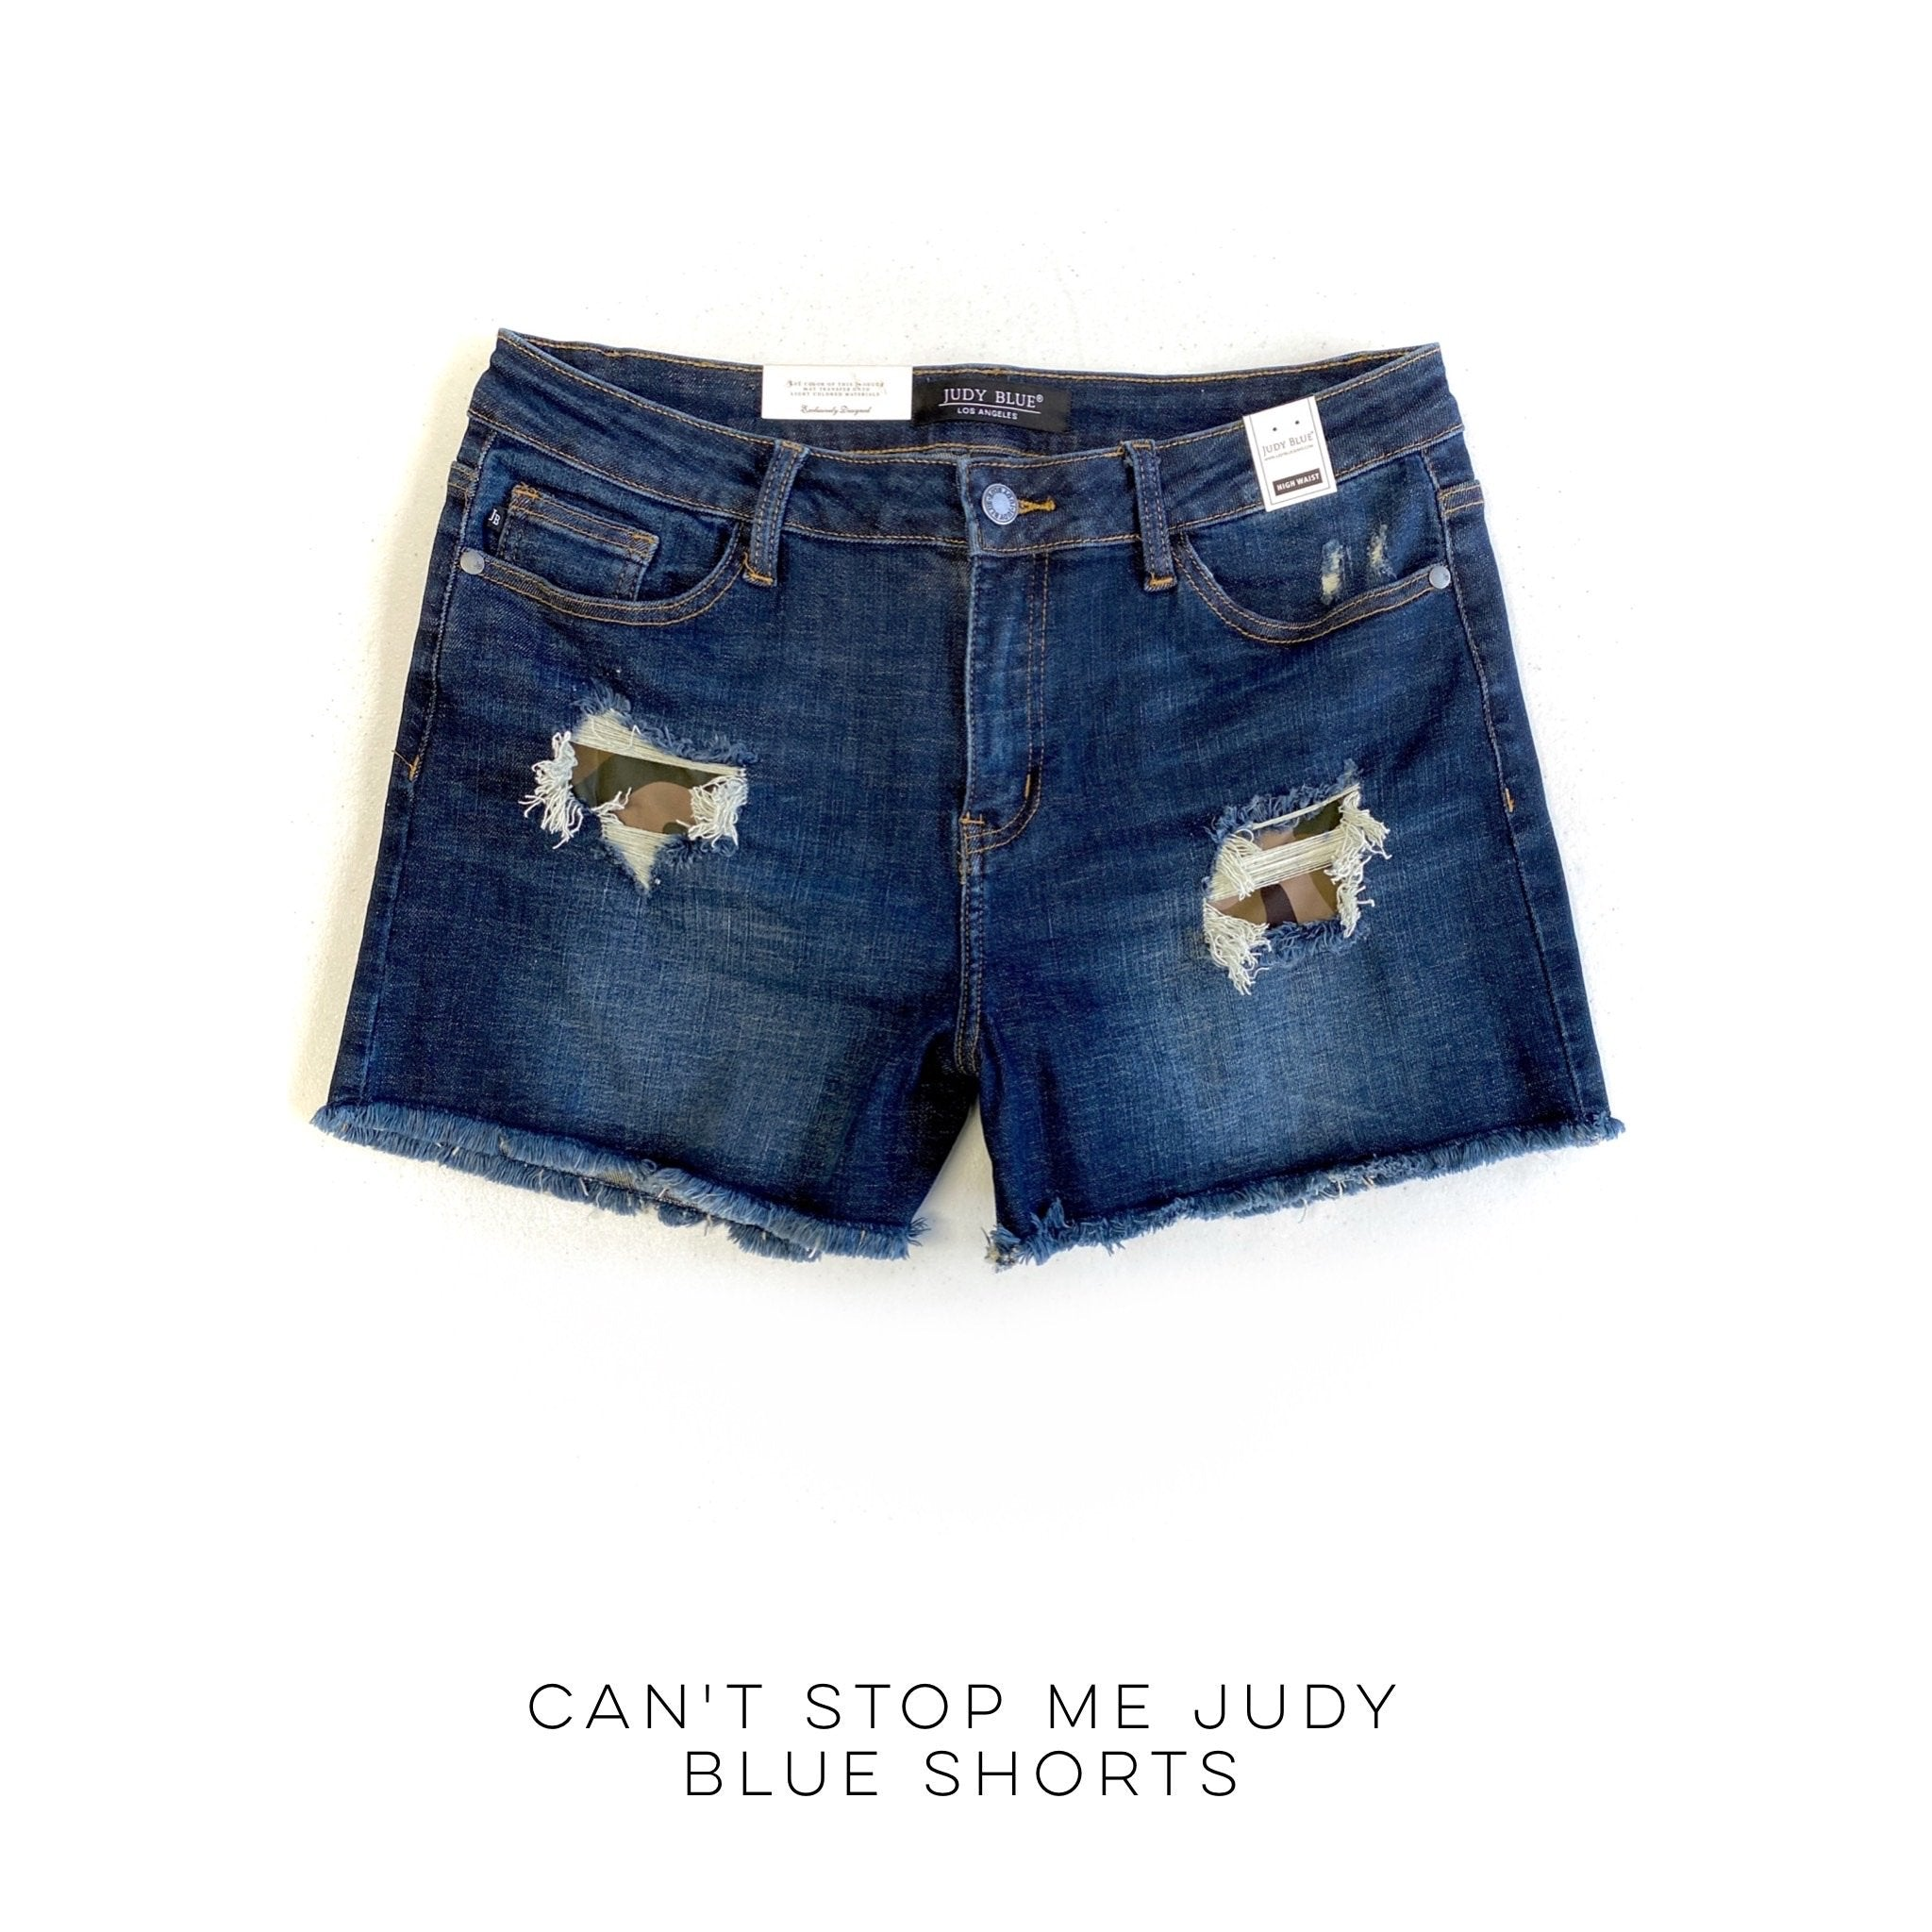 Can't Stop Me Judy Blue Shorts